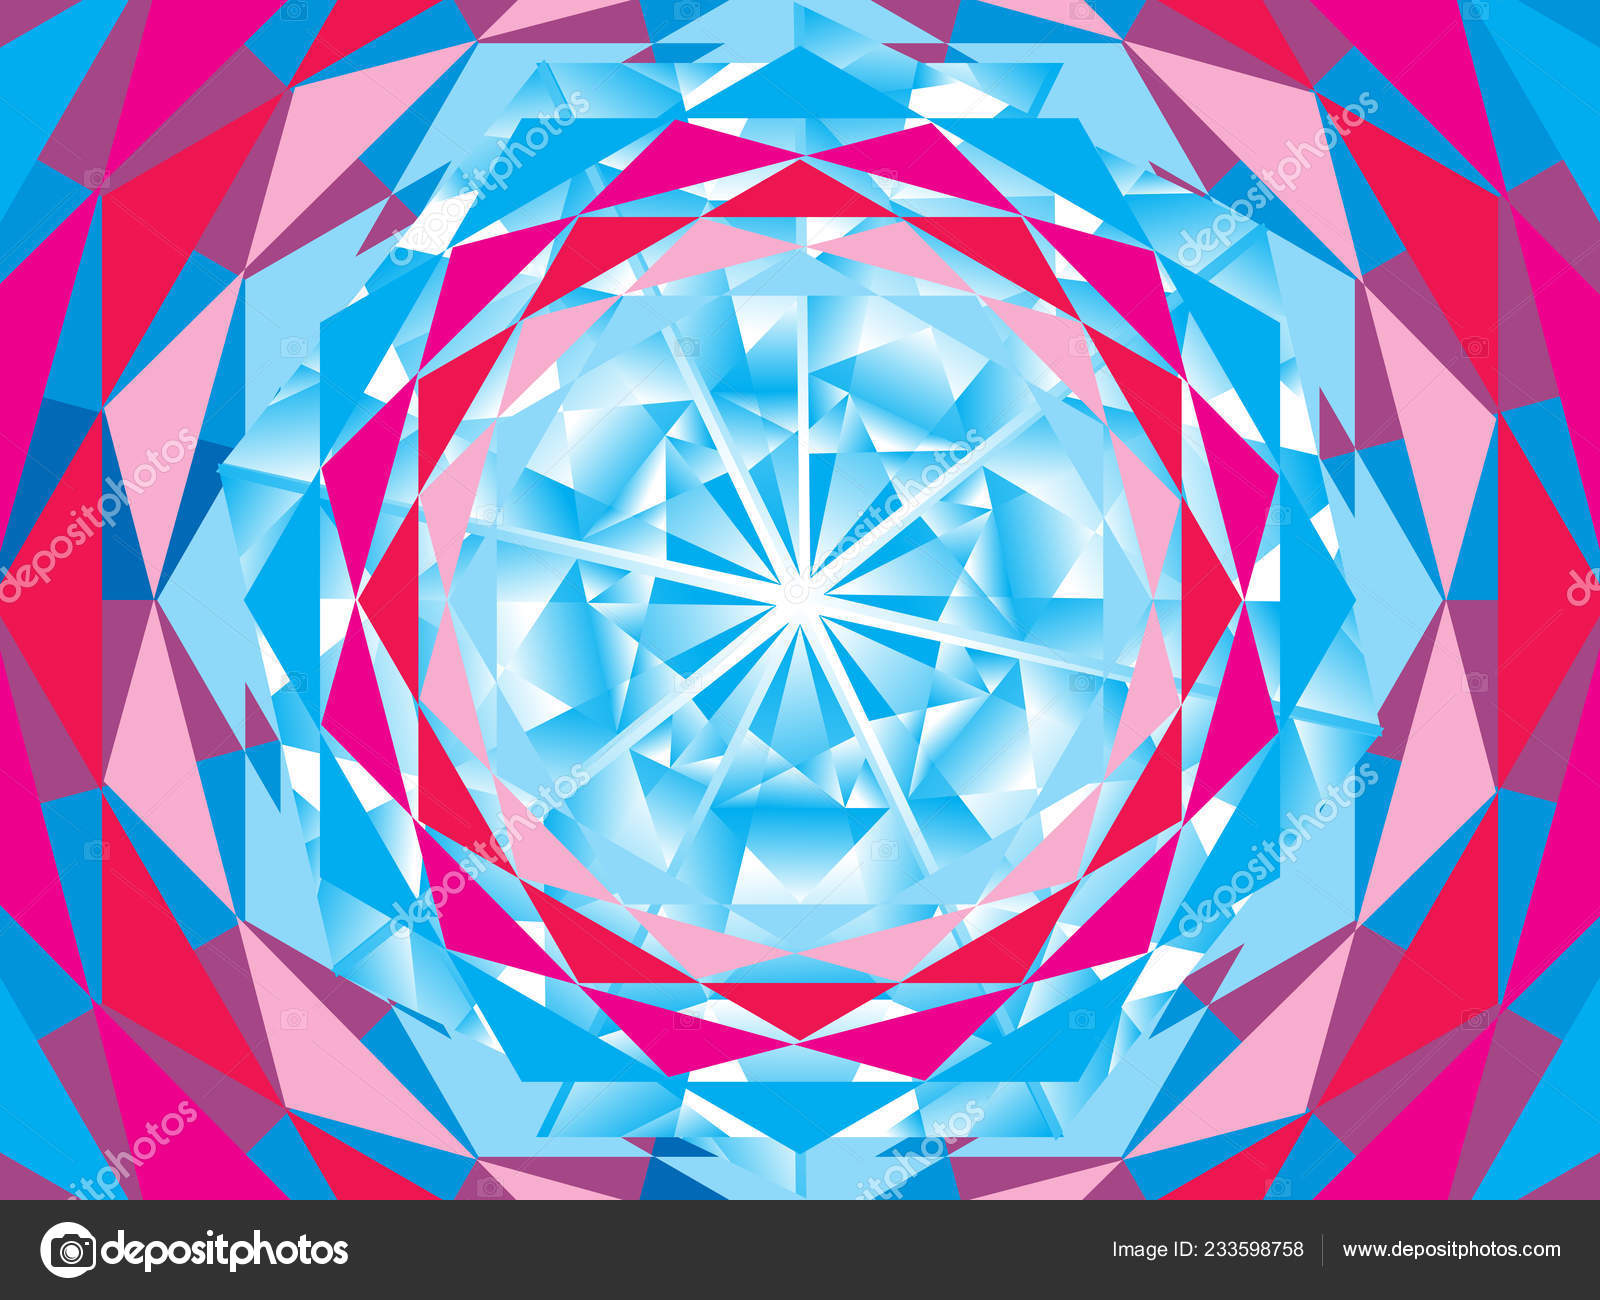 Abstract Artistic Diamond Background Vector Illustration